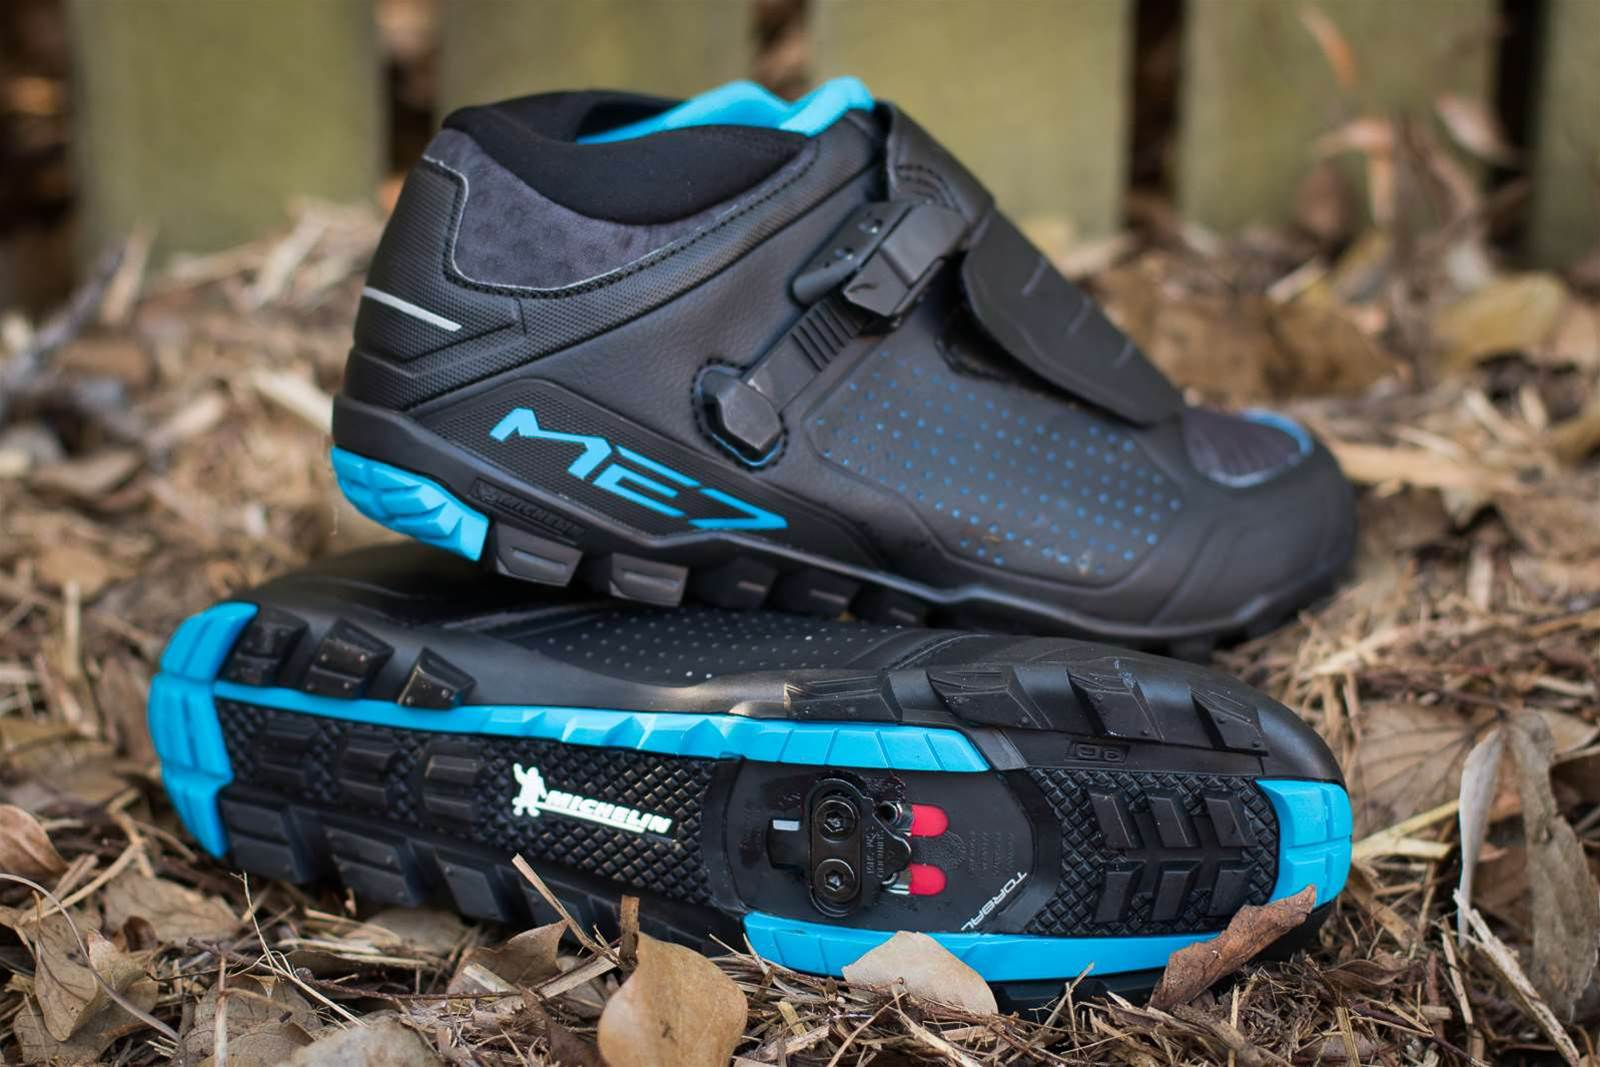 FIRST LOOK: Shimano's ME7 all-mountain and enduro shoe